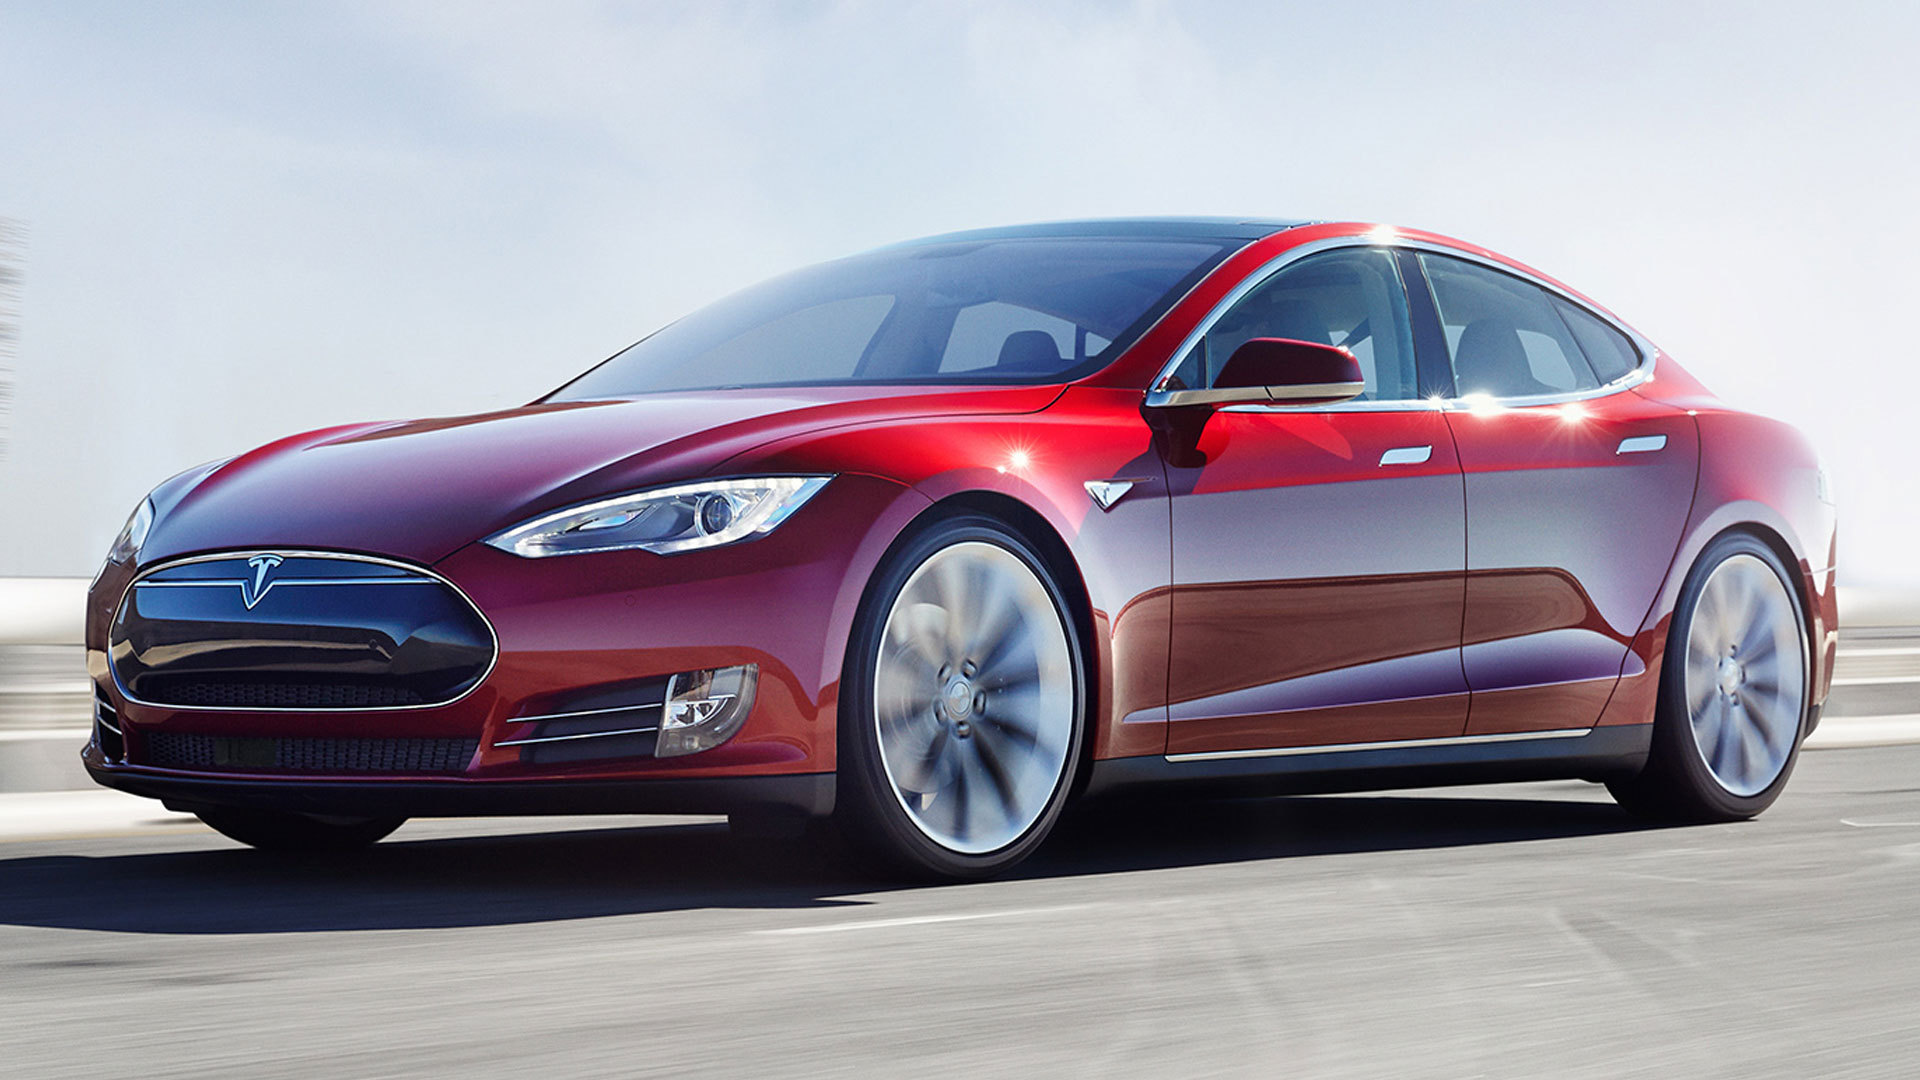 Tesla Model S HD Desktop